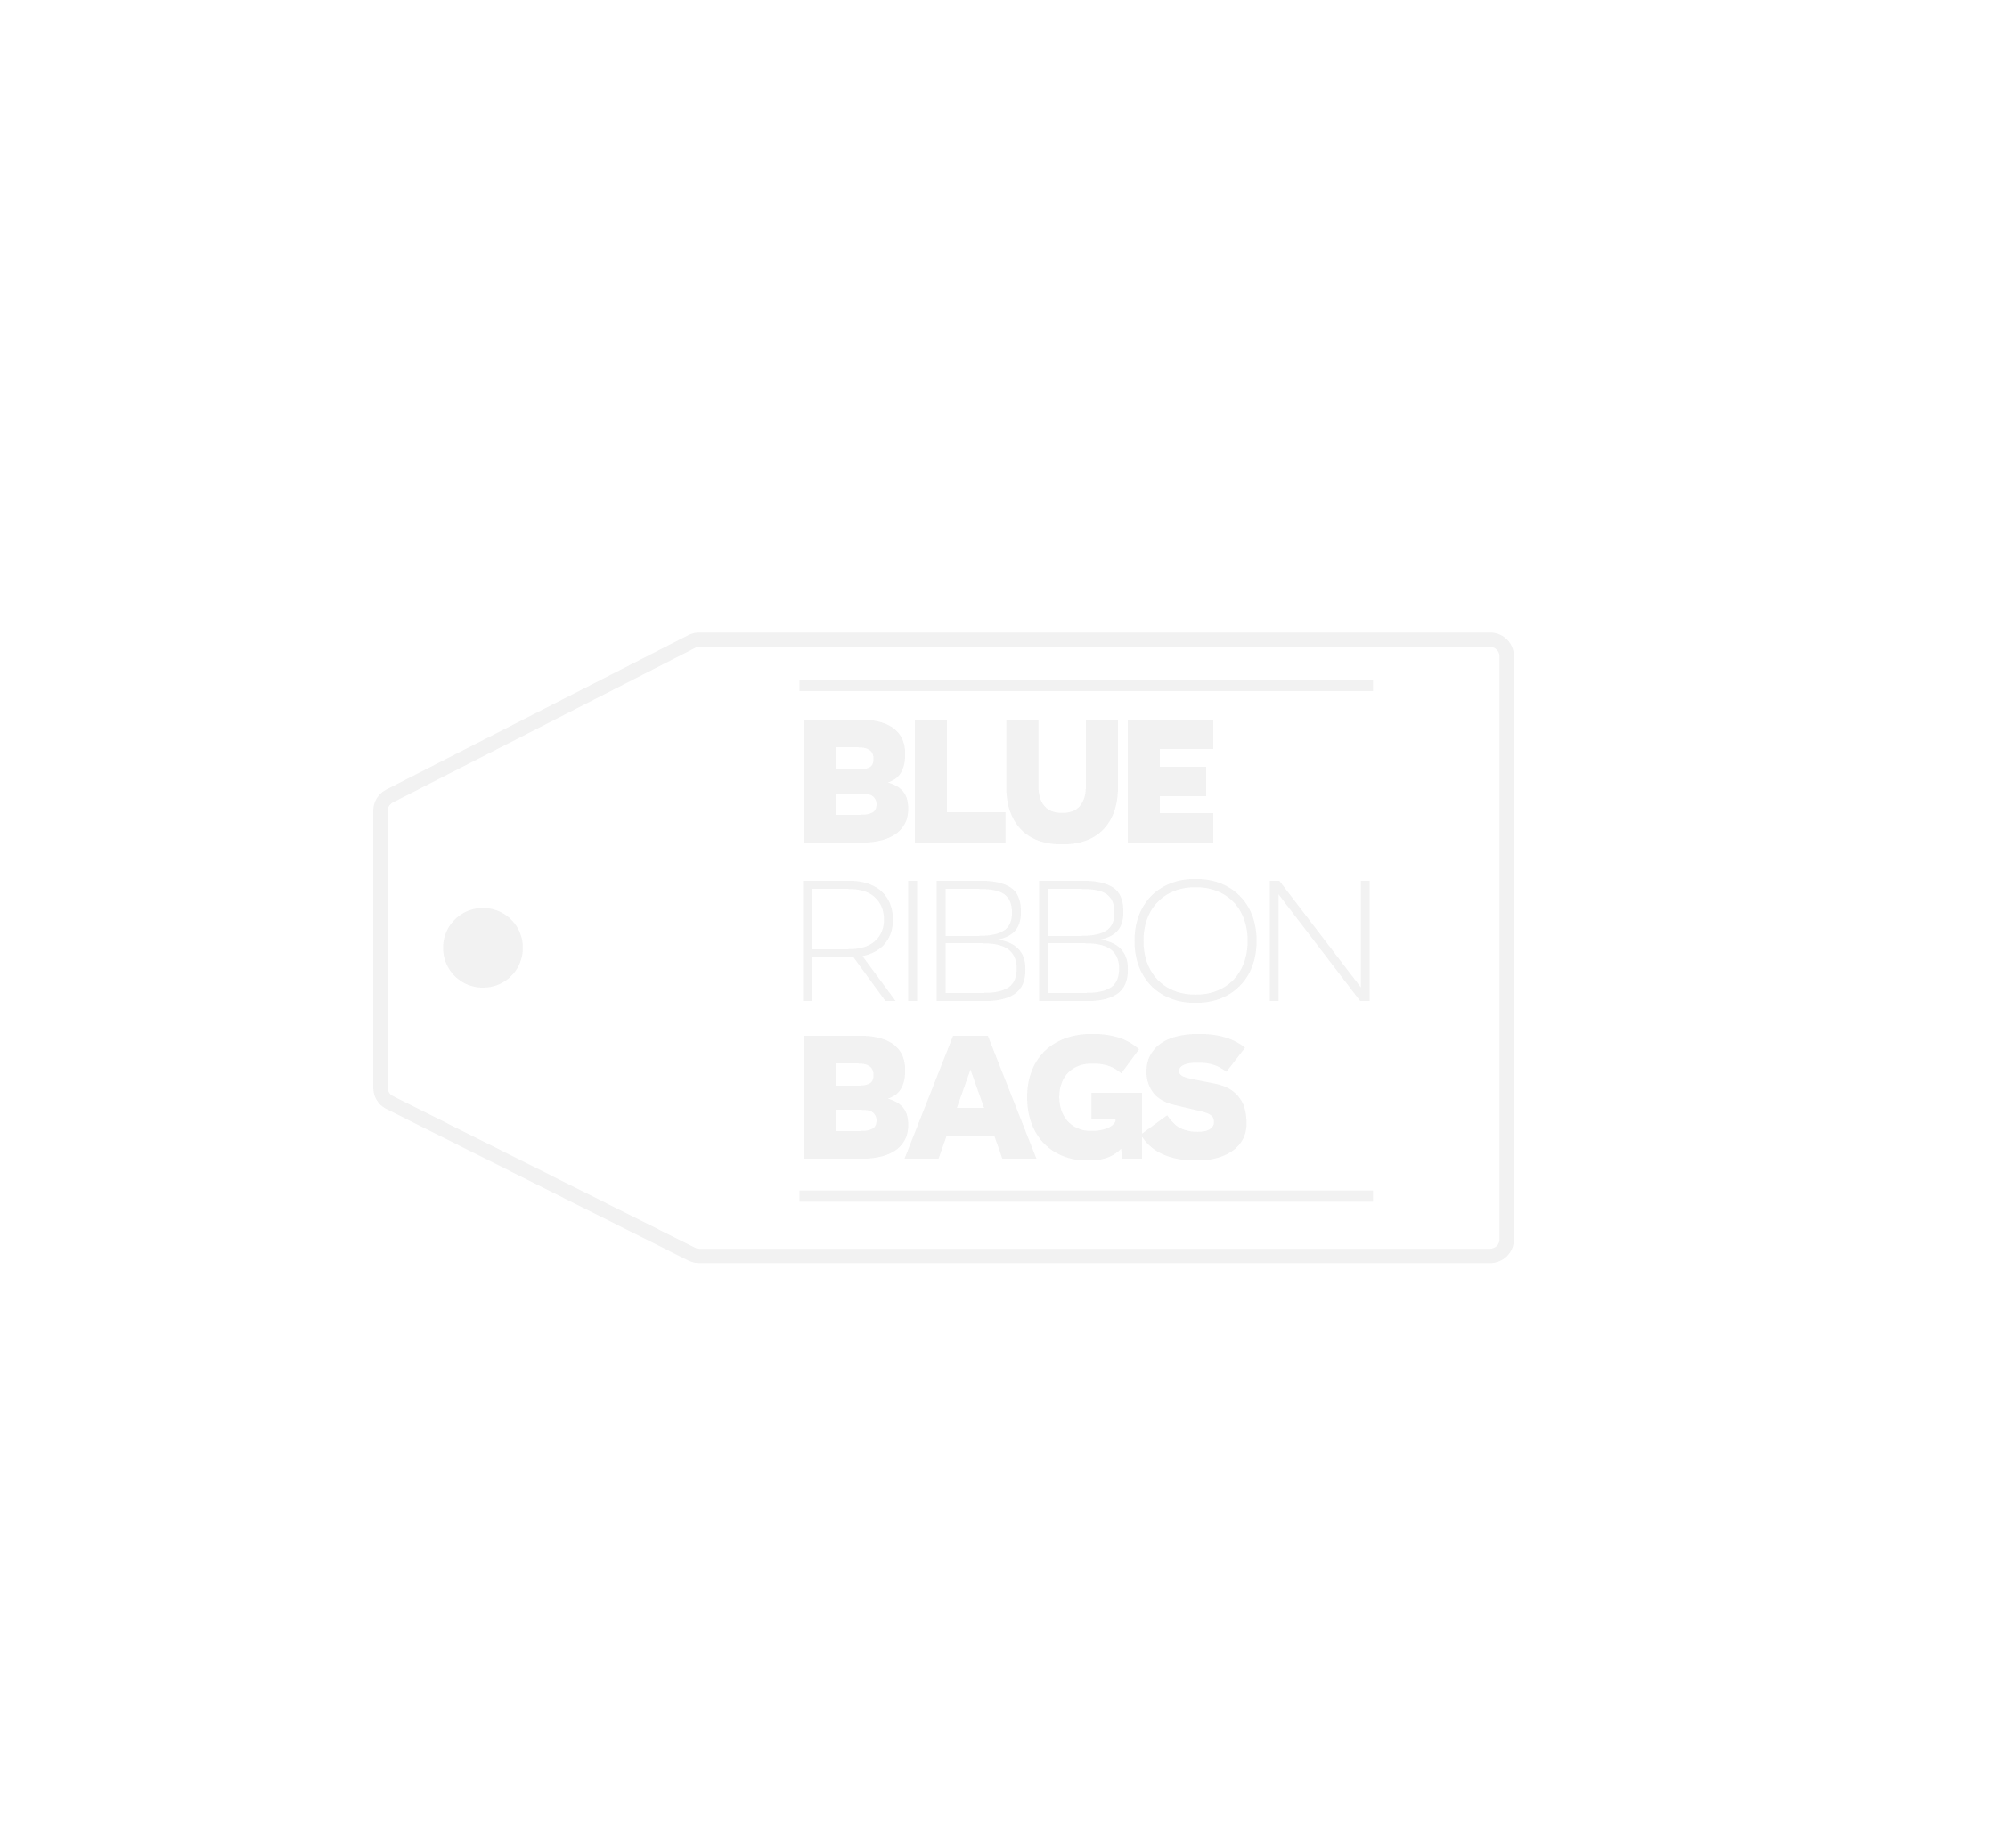 Blue Ribbon Bags logo